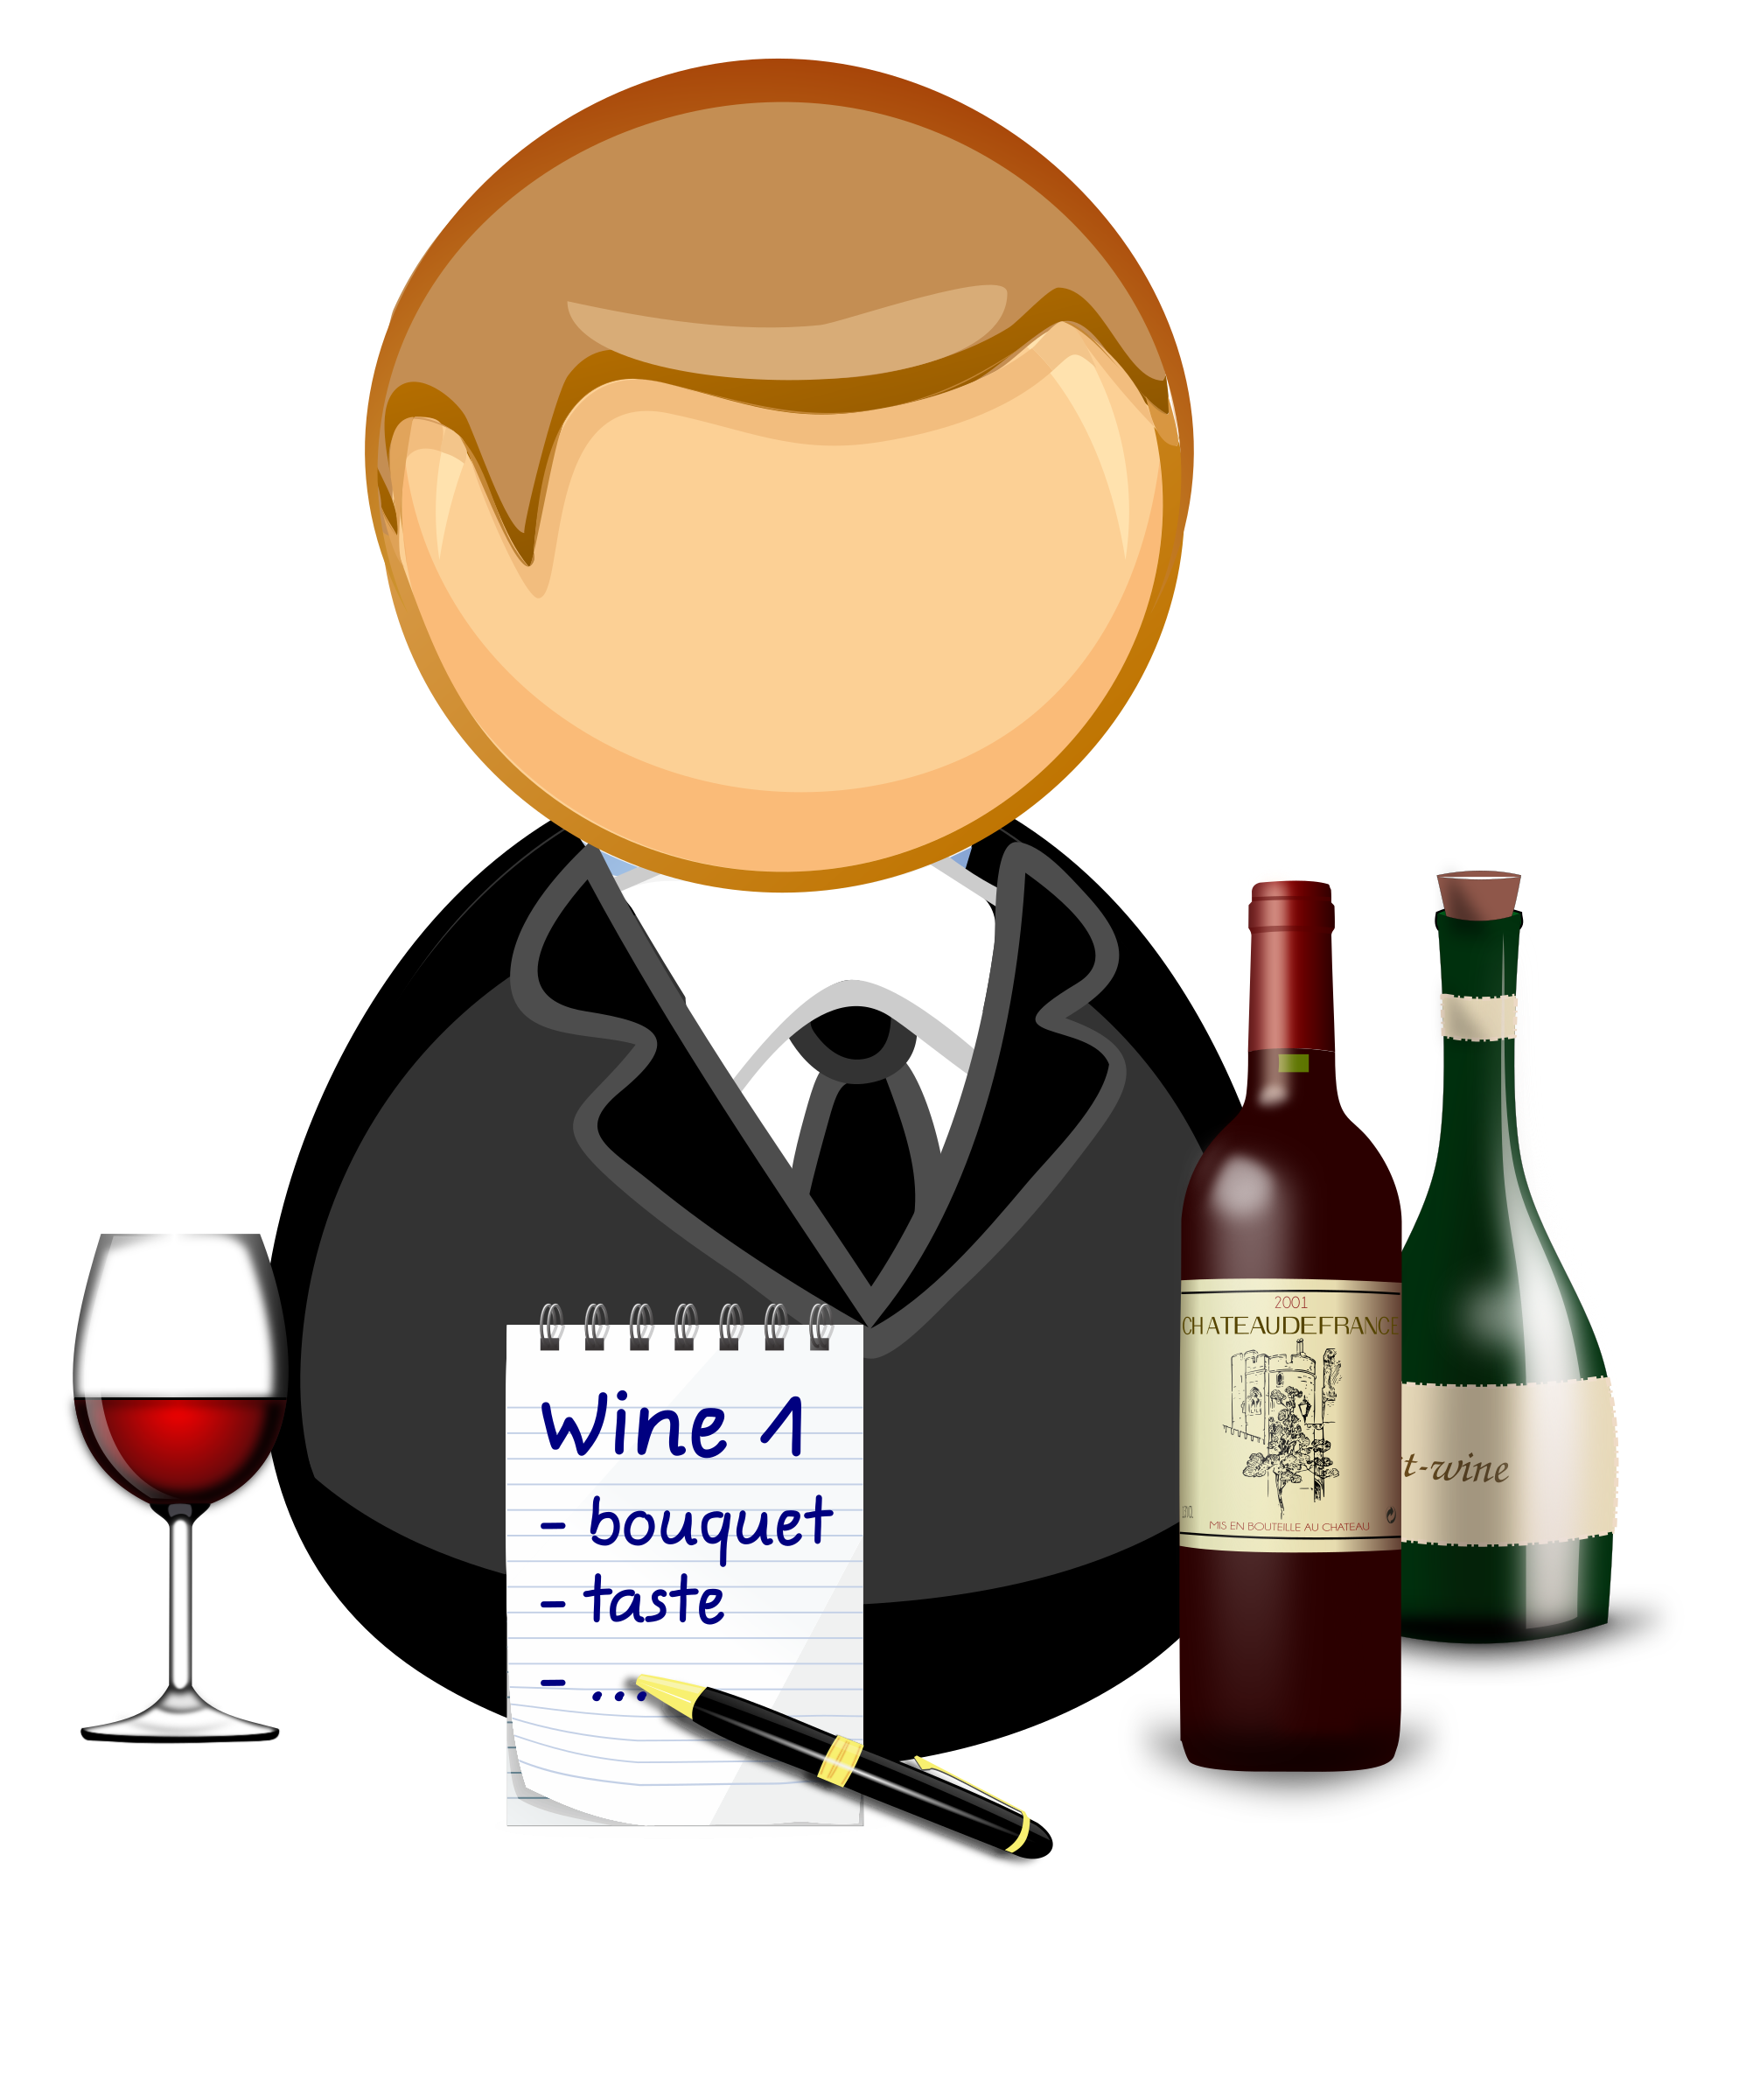 Sommelier / wine steward by Juhele